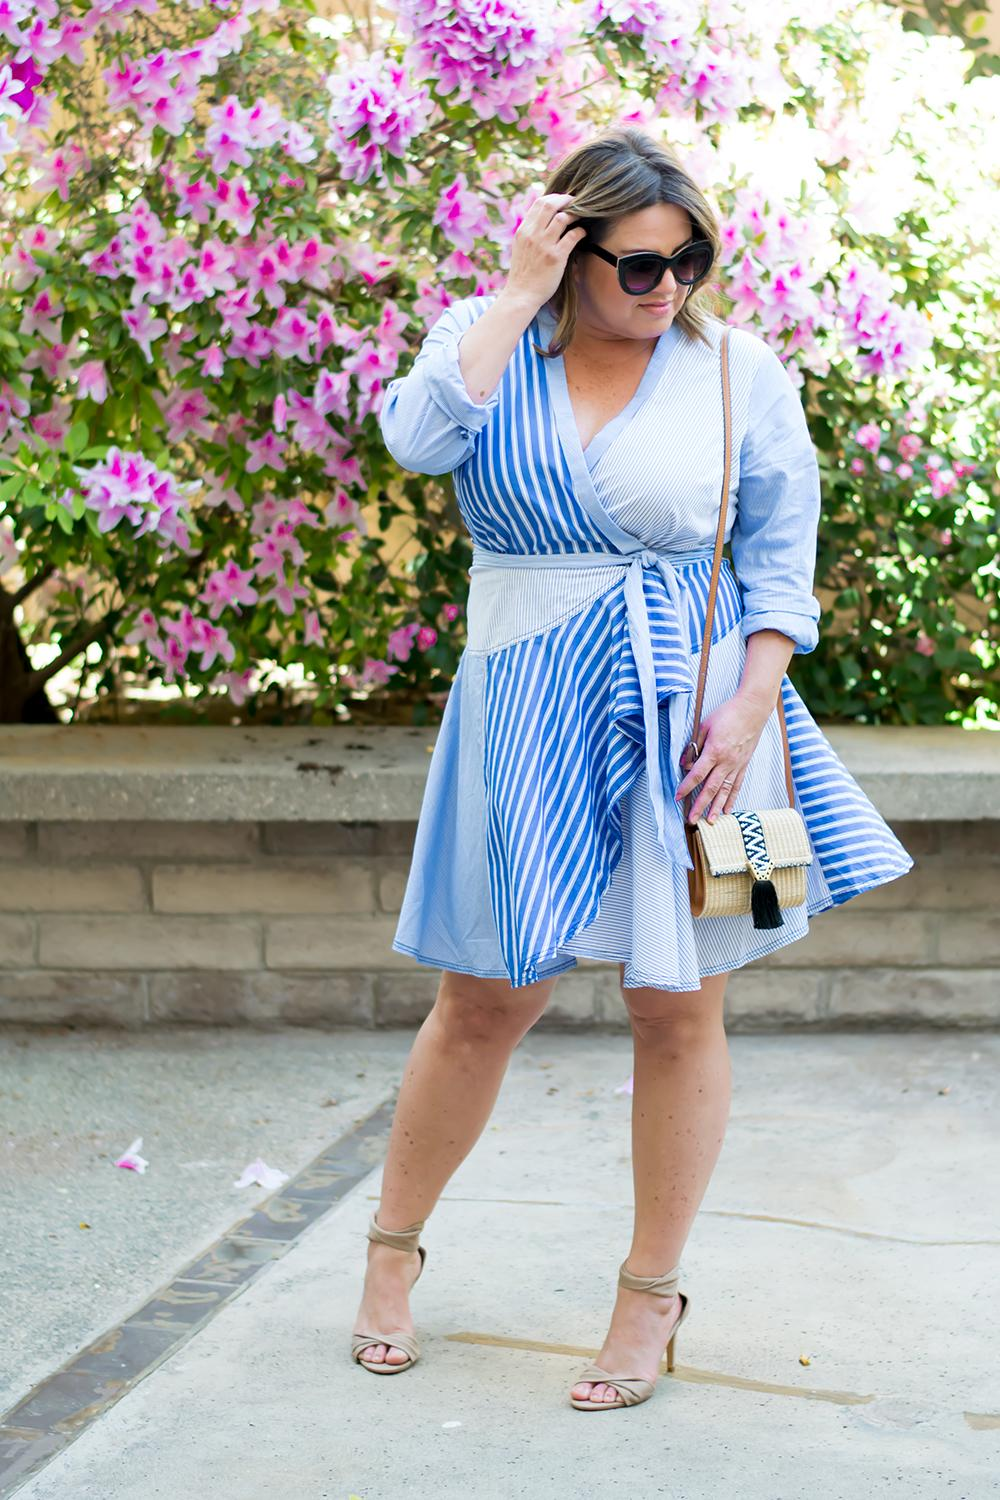 Striped-Poplin-Wrap-Dress-Top-Blogger-Outfits-for-2017-Barefoot-in-LA-Fashion-Blog-Style-Ideas_1042